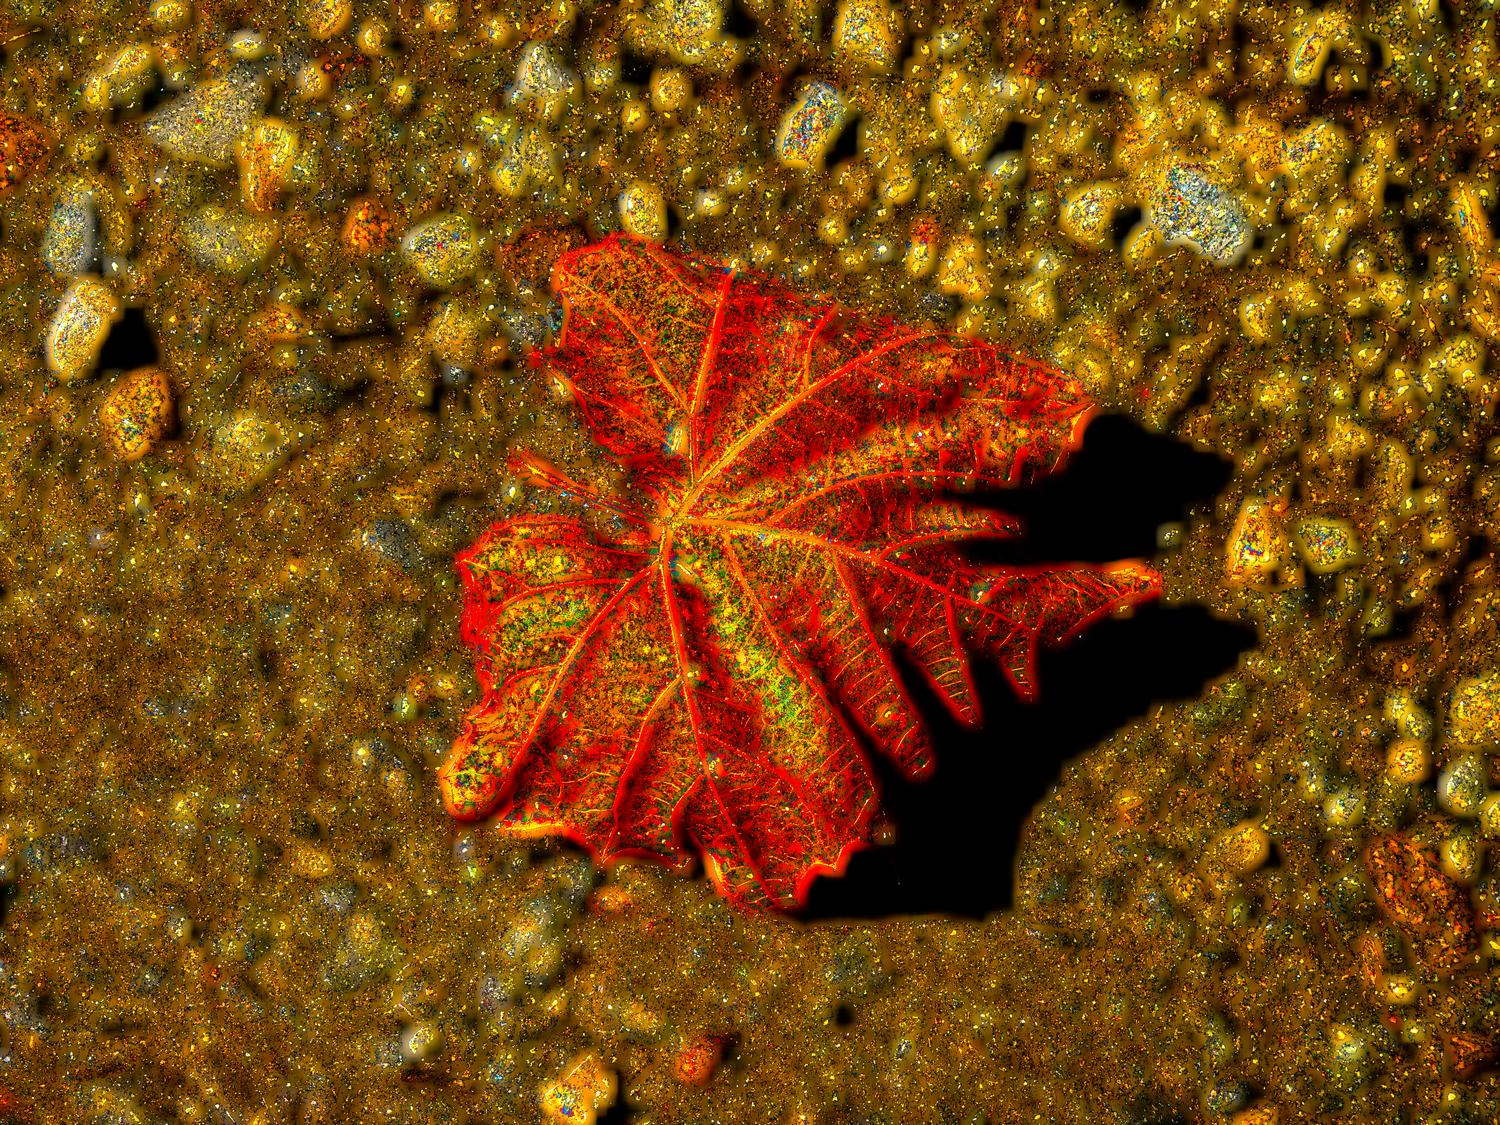 stylized leaf strong red, orange yellow colors - <center>Magical leaf on a dirt road - Techno-Impressionist Museum - Techno-Impressionism - art - beautiful - photo photography picture - by Tony Karp